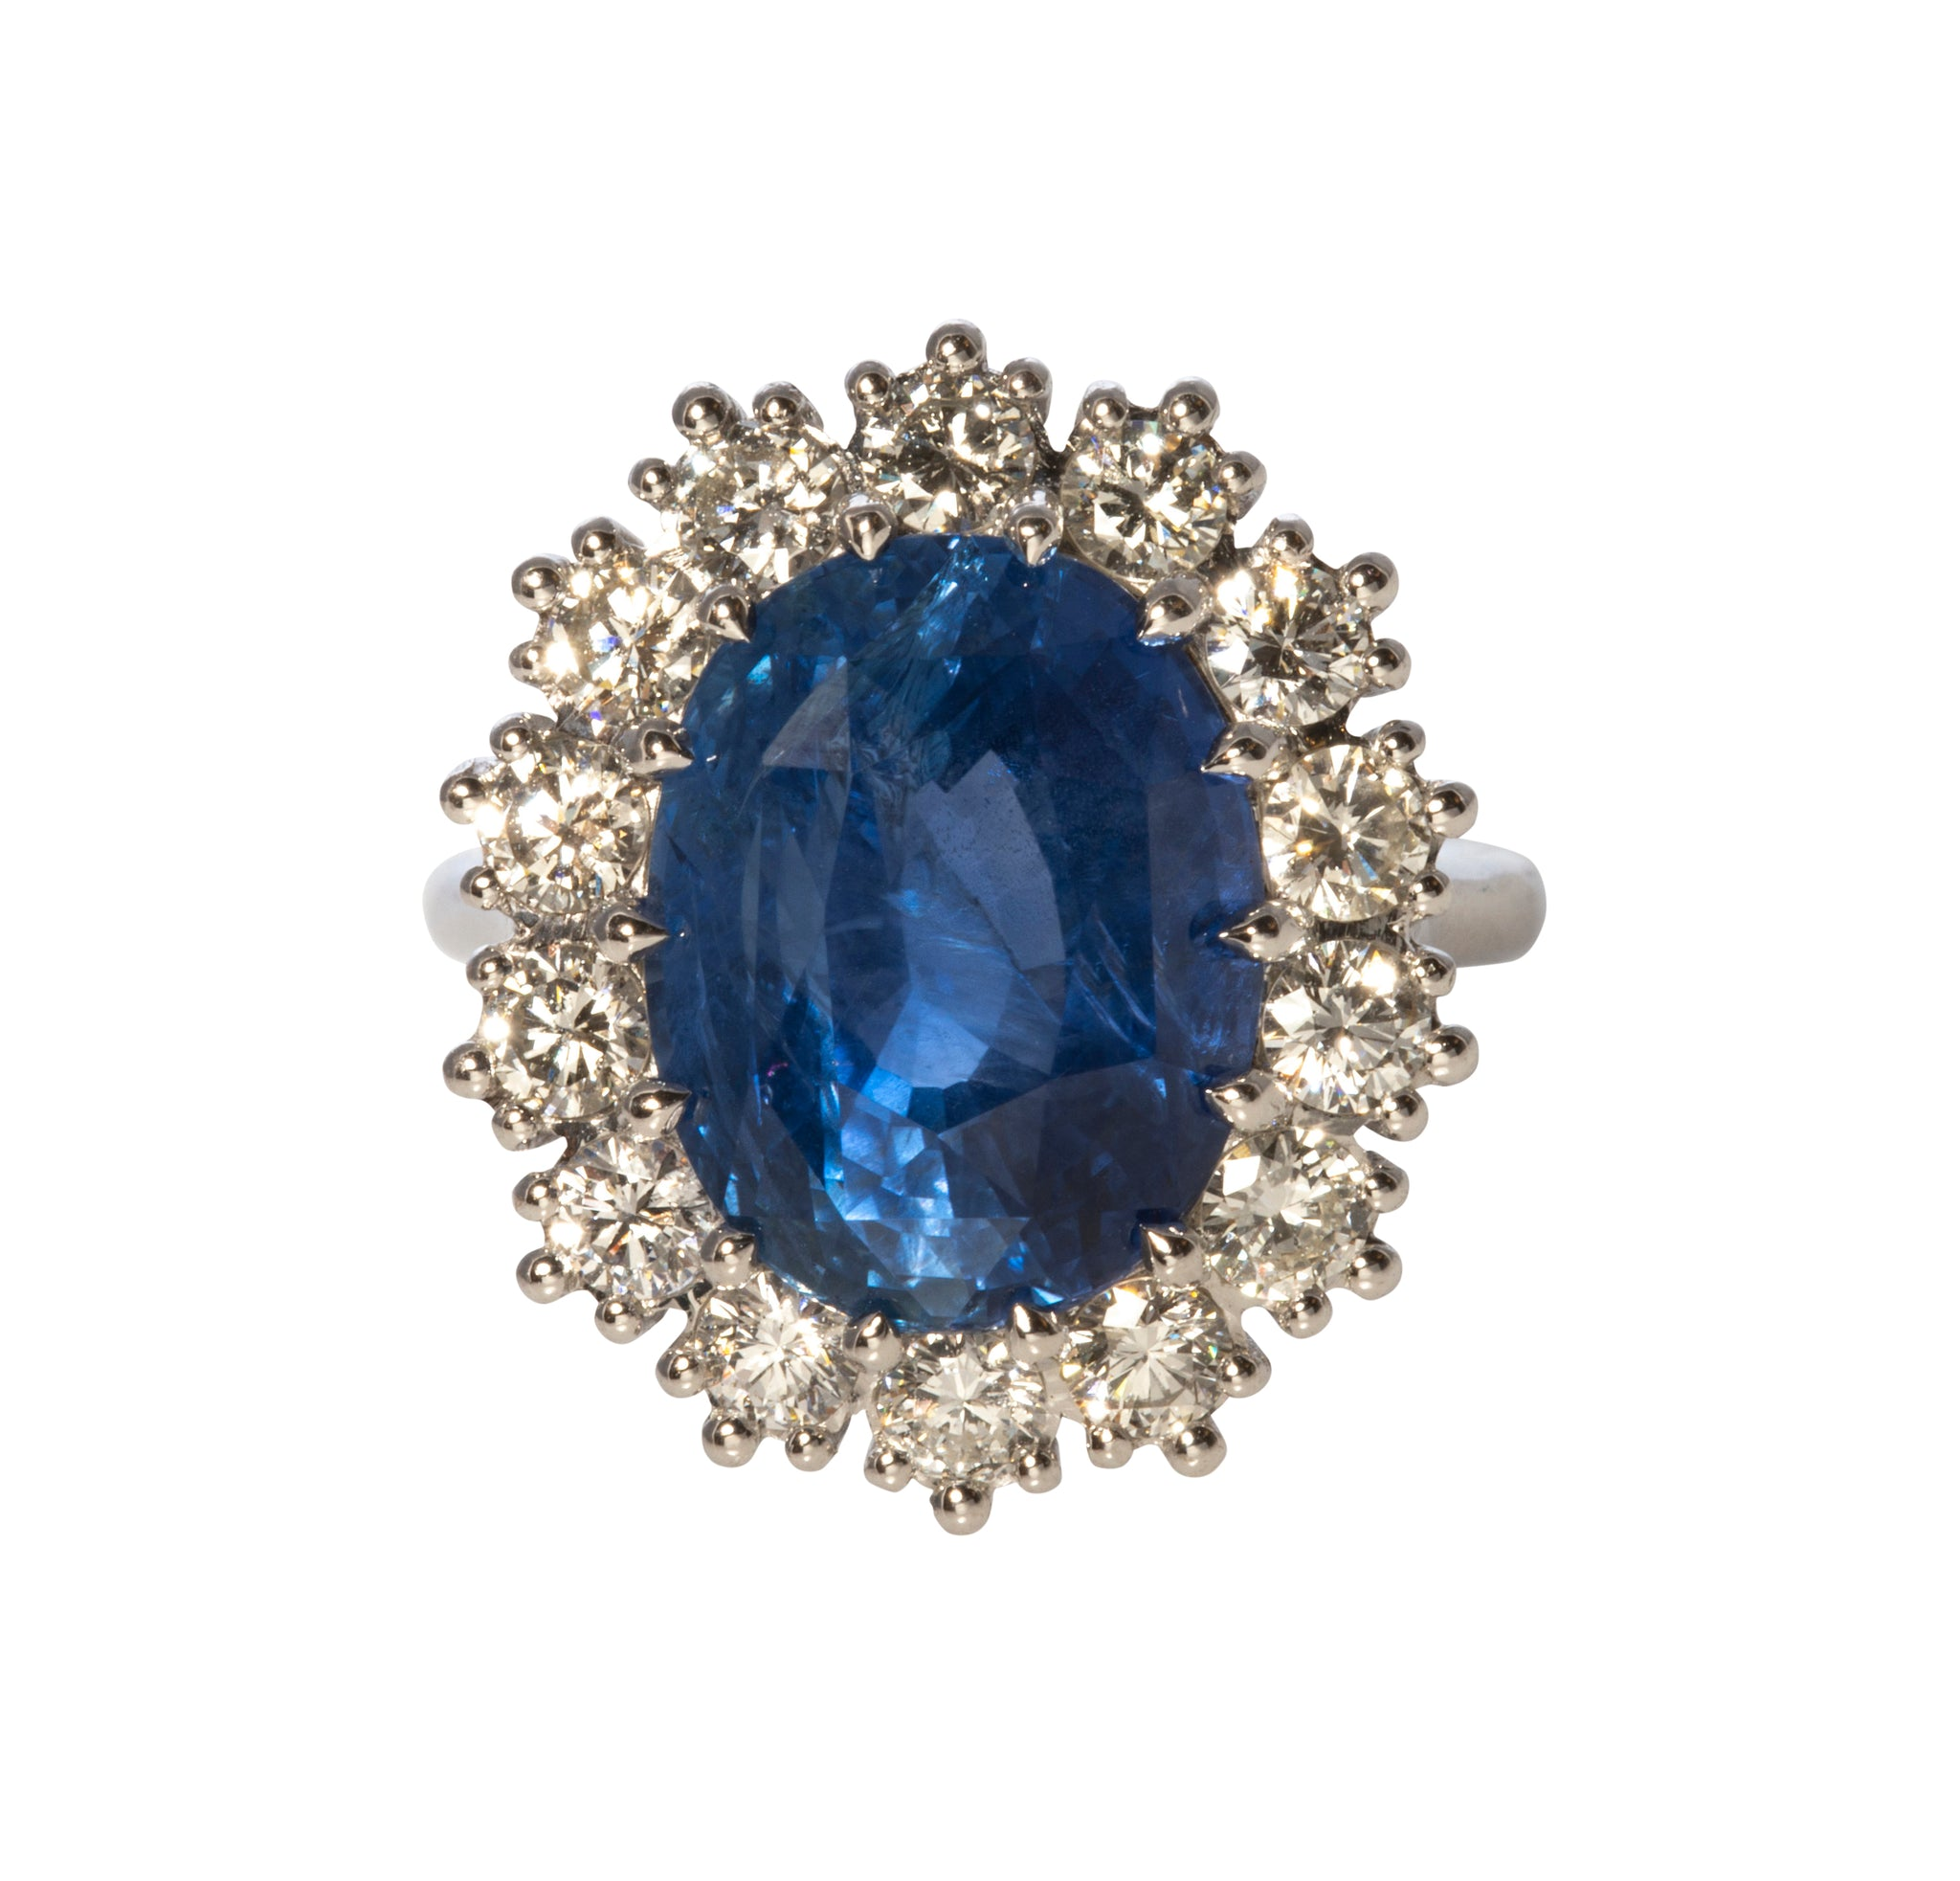 10.15ct No Heat Sapphire & Diamond Platinum Ring